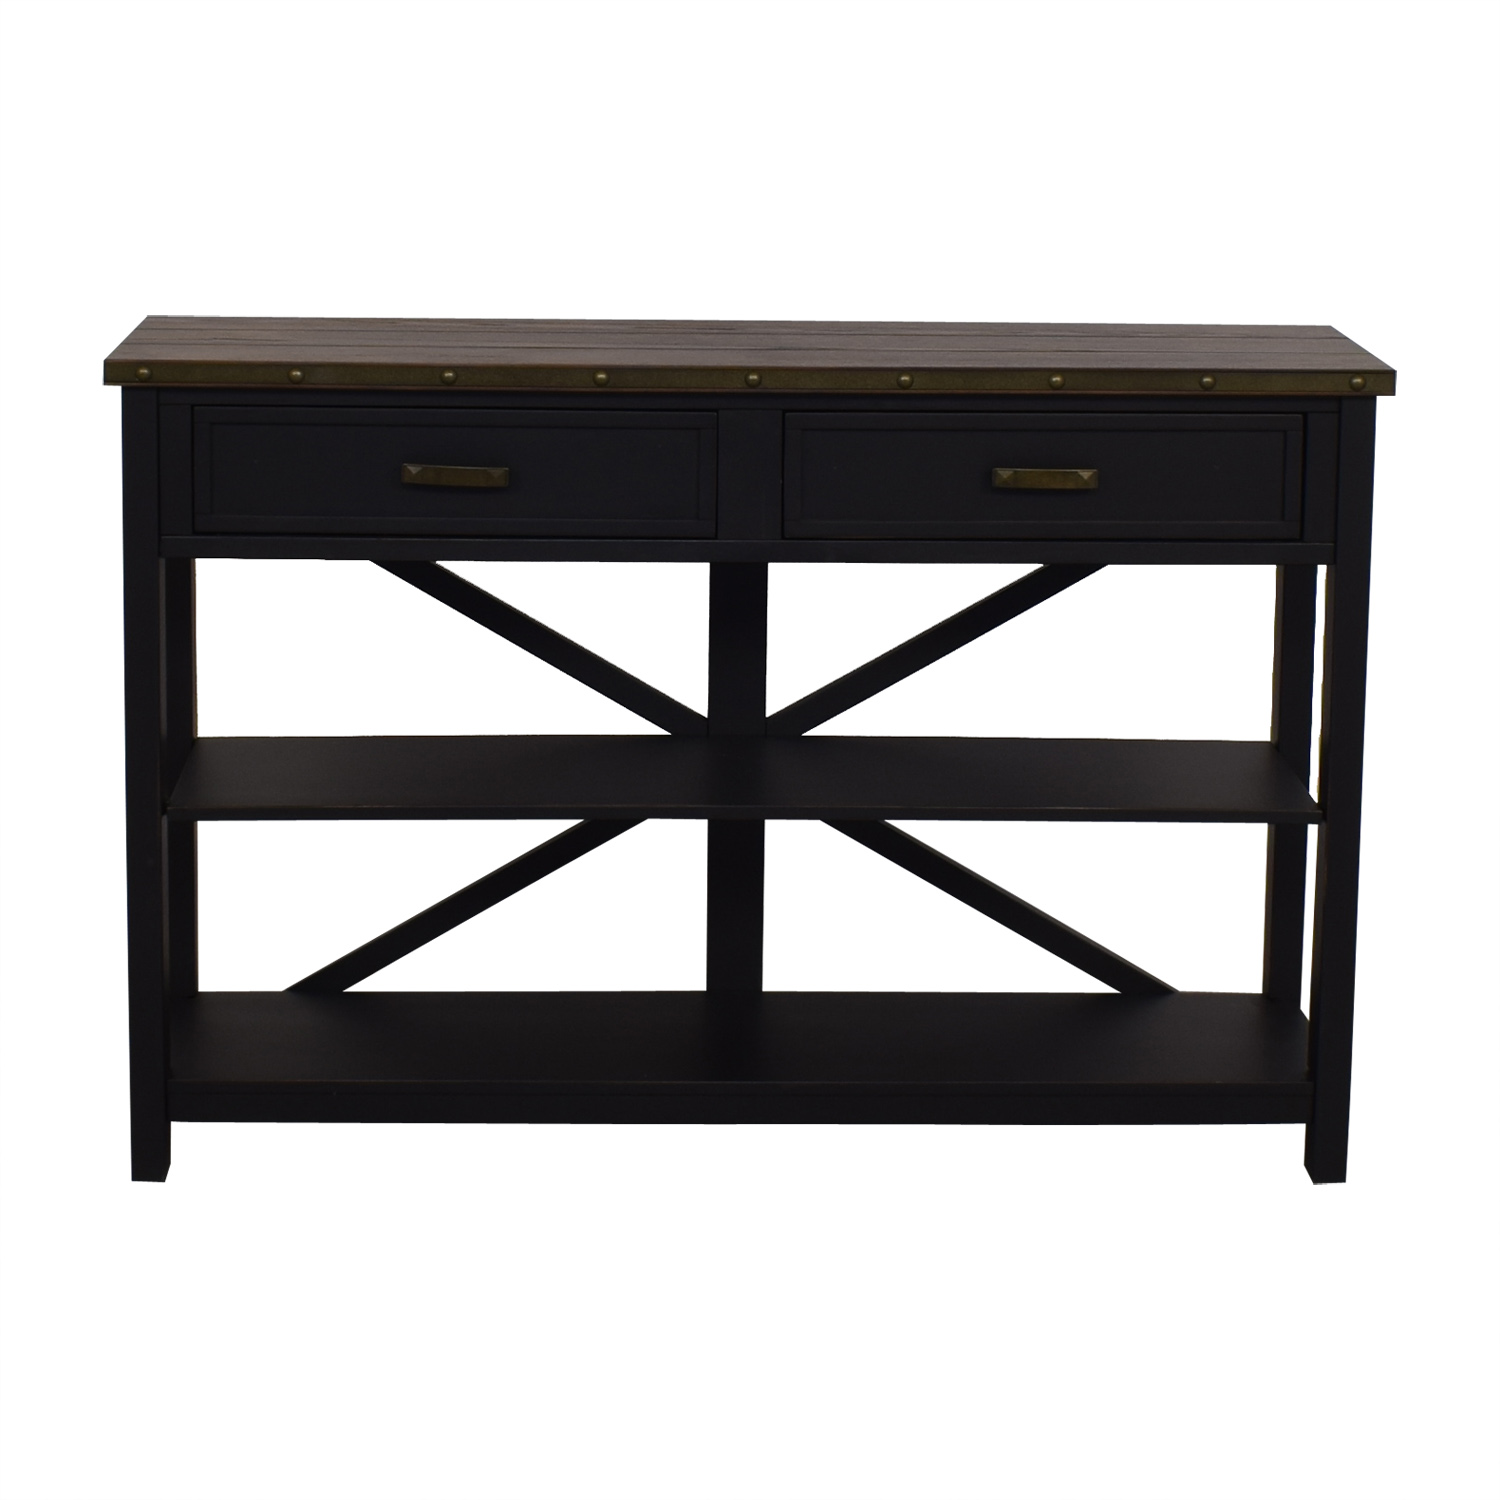 Raymour & Flanigan Raymour & Flanigan Brennan Sofa Table discount